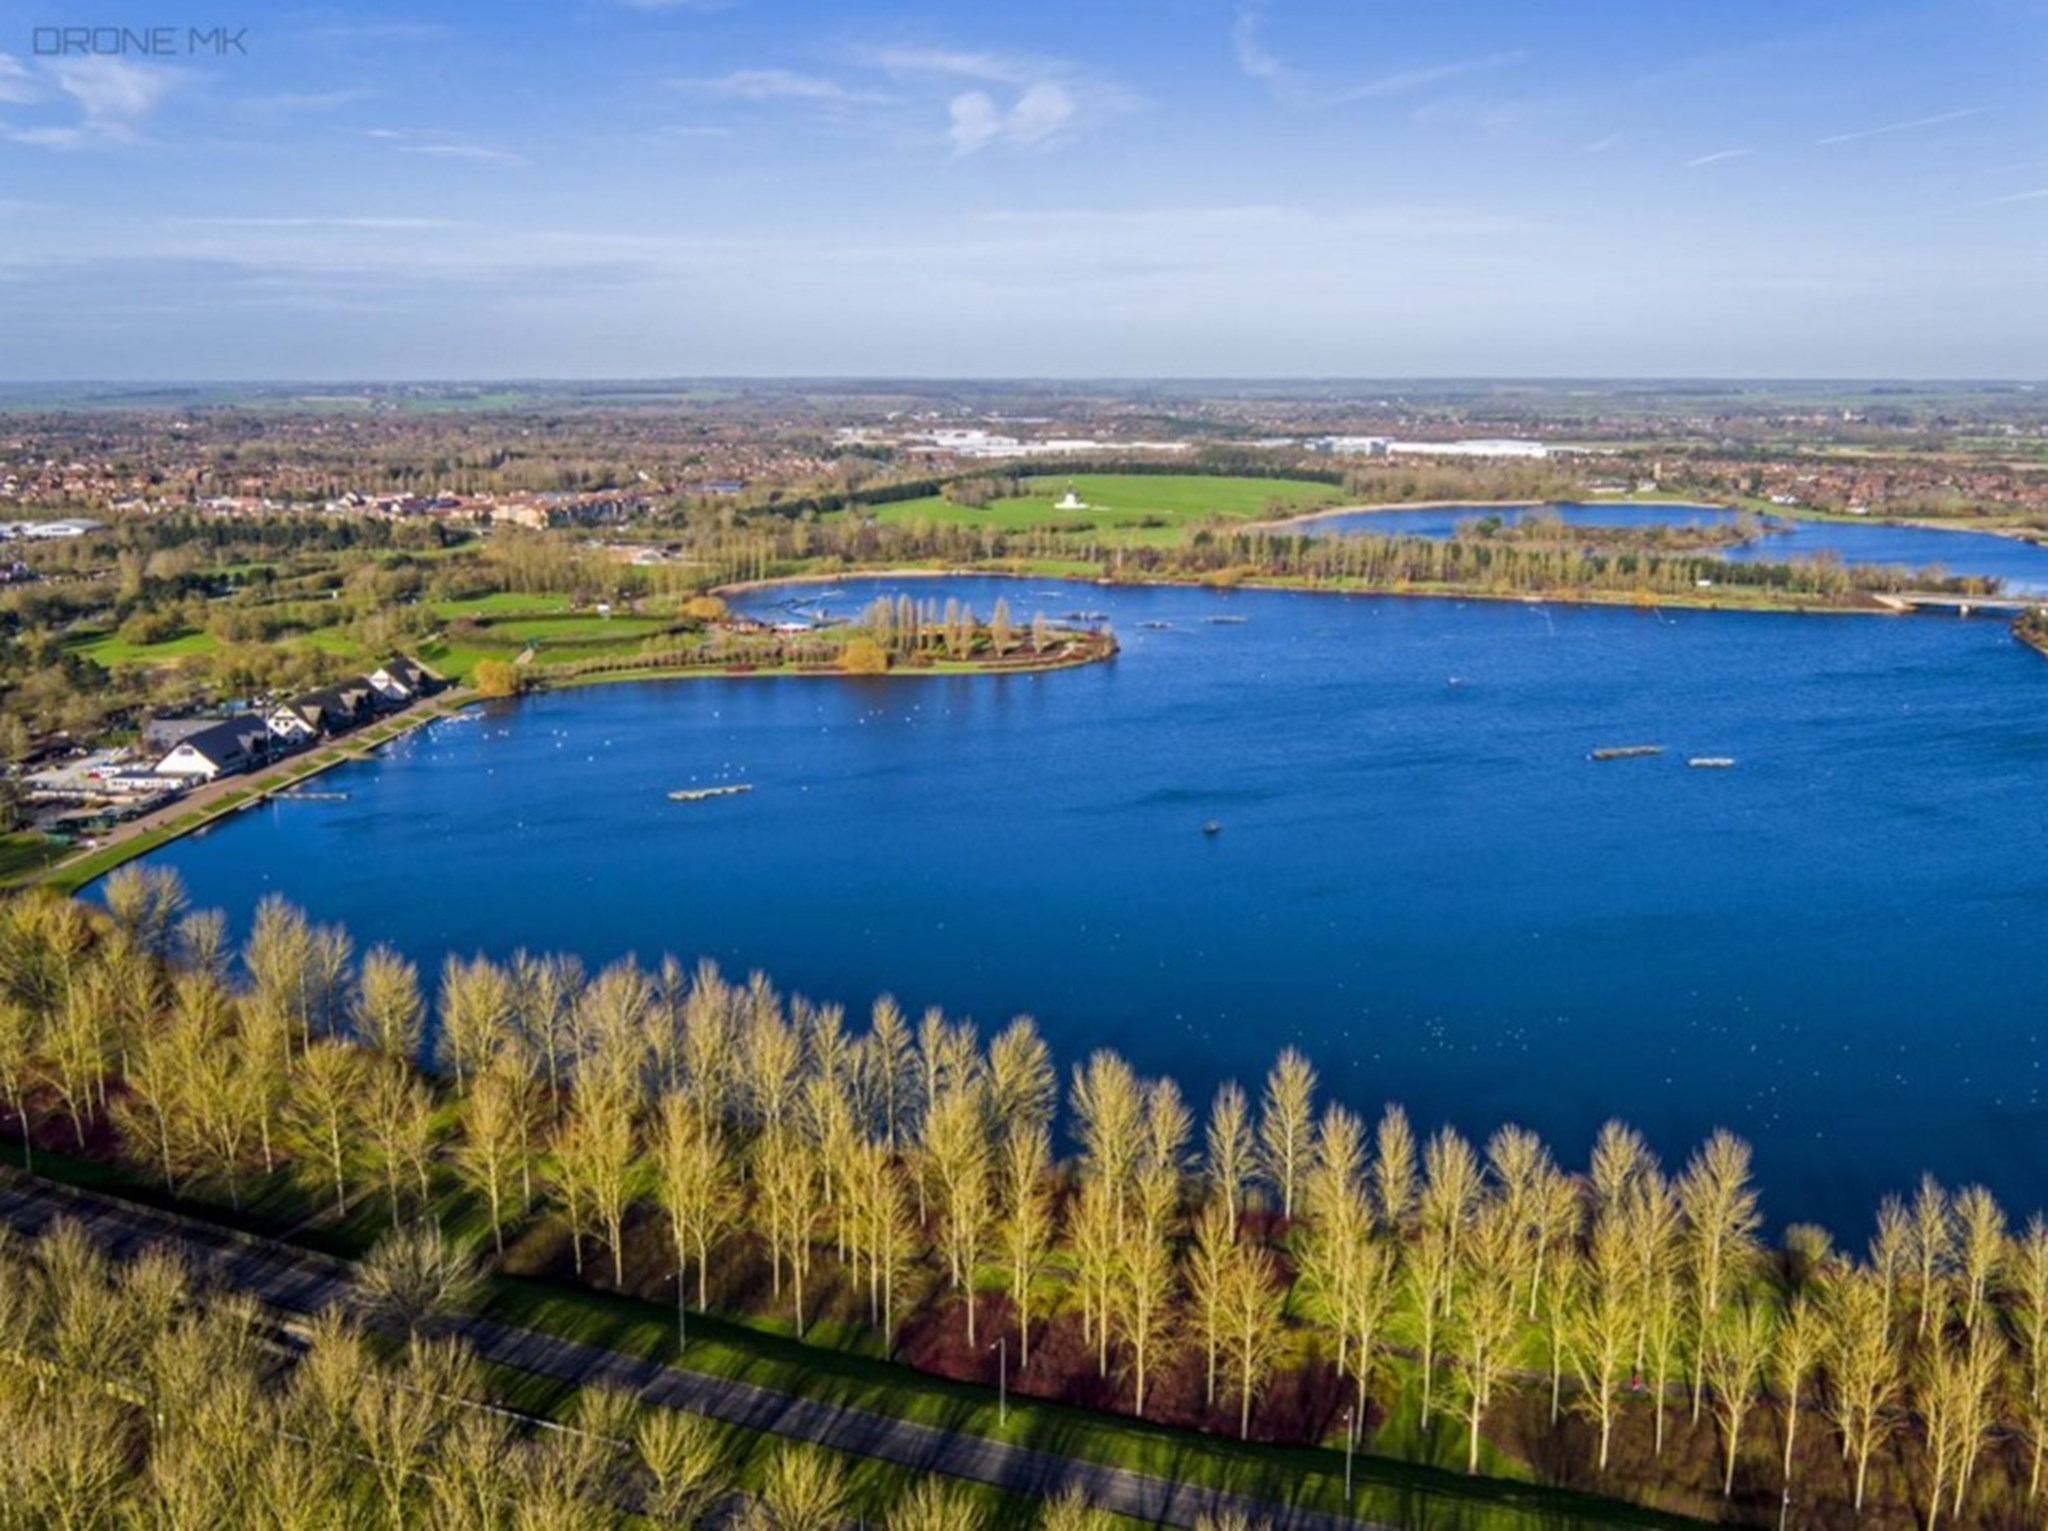 Willen-Lake-Aerial-View-Drone.jpg